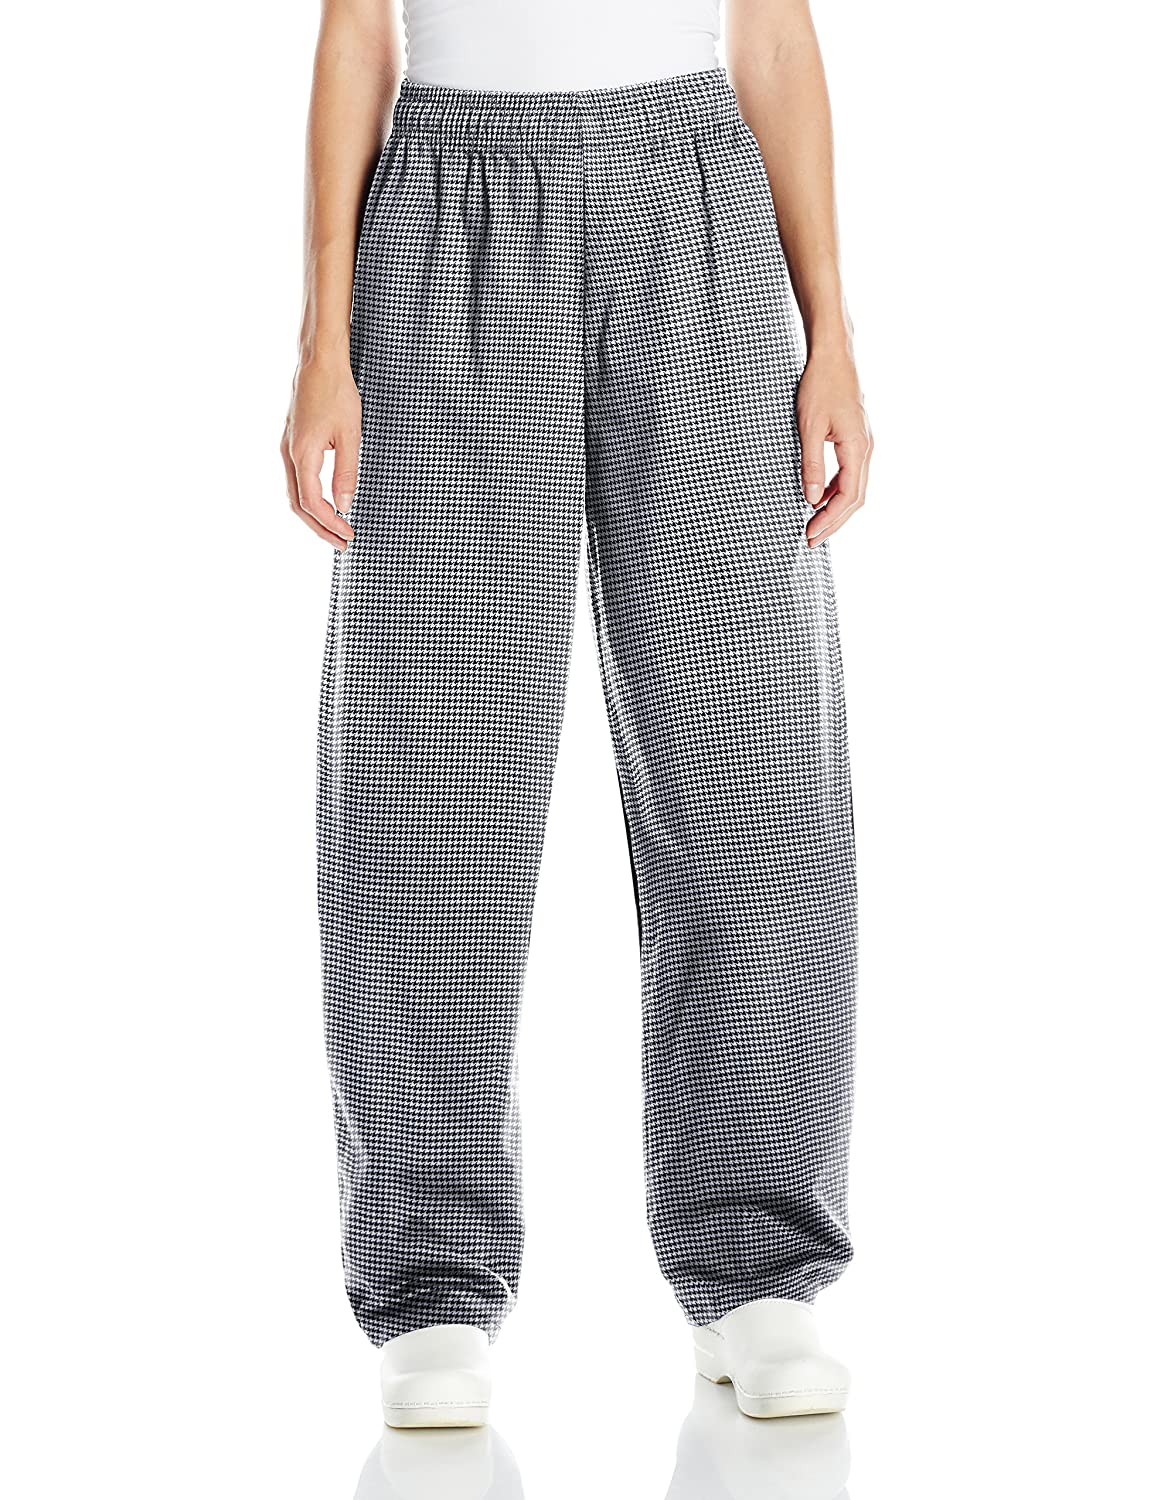 Uncommon Threads Womens Baggy Pant 2 Uncommon Threads Womens Uniforms 4005C